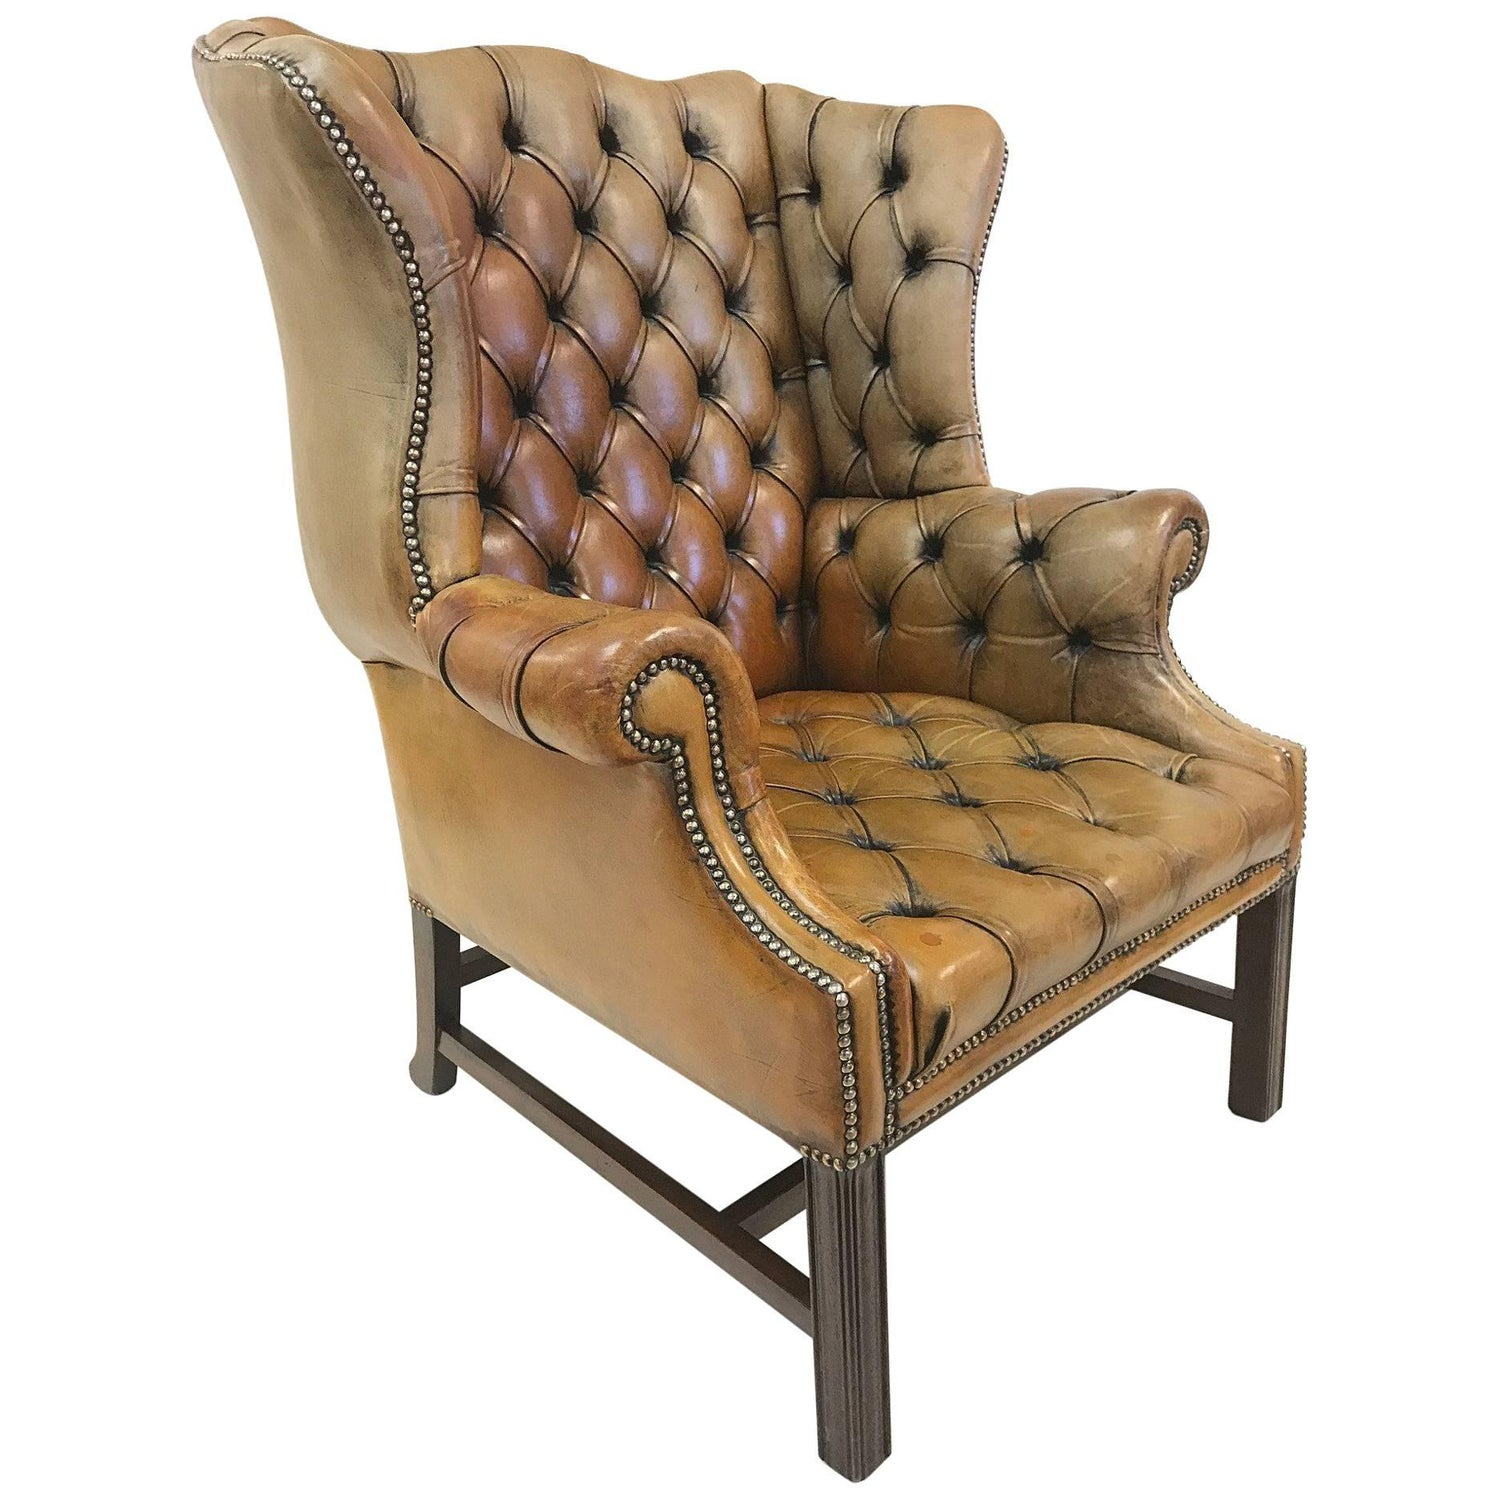 Chippendale Wingback Chairs 27 For Sale at 1stdibs